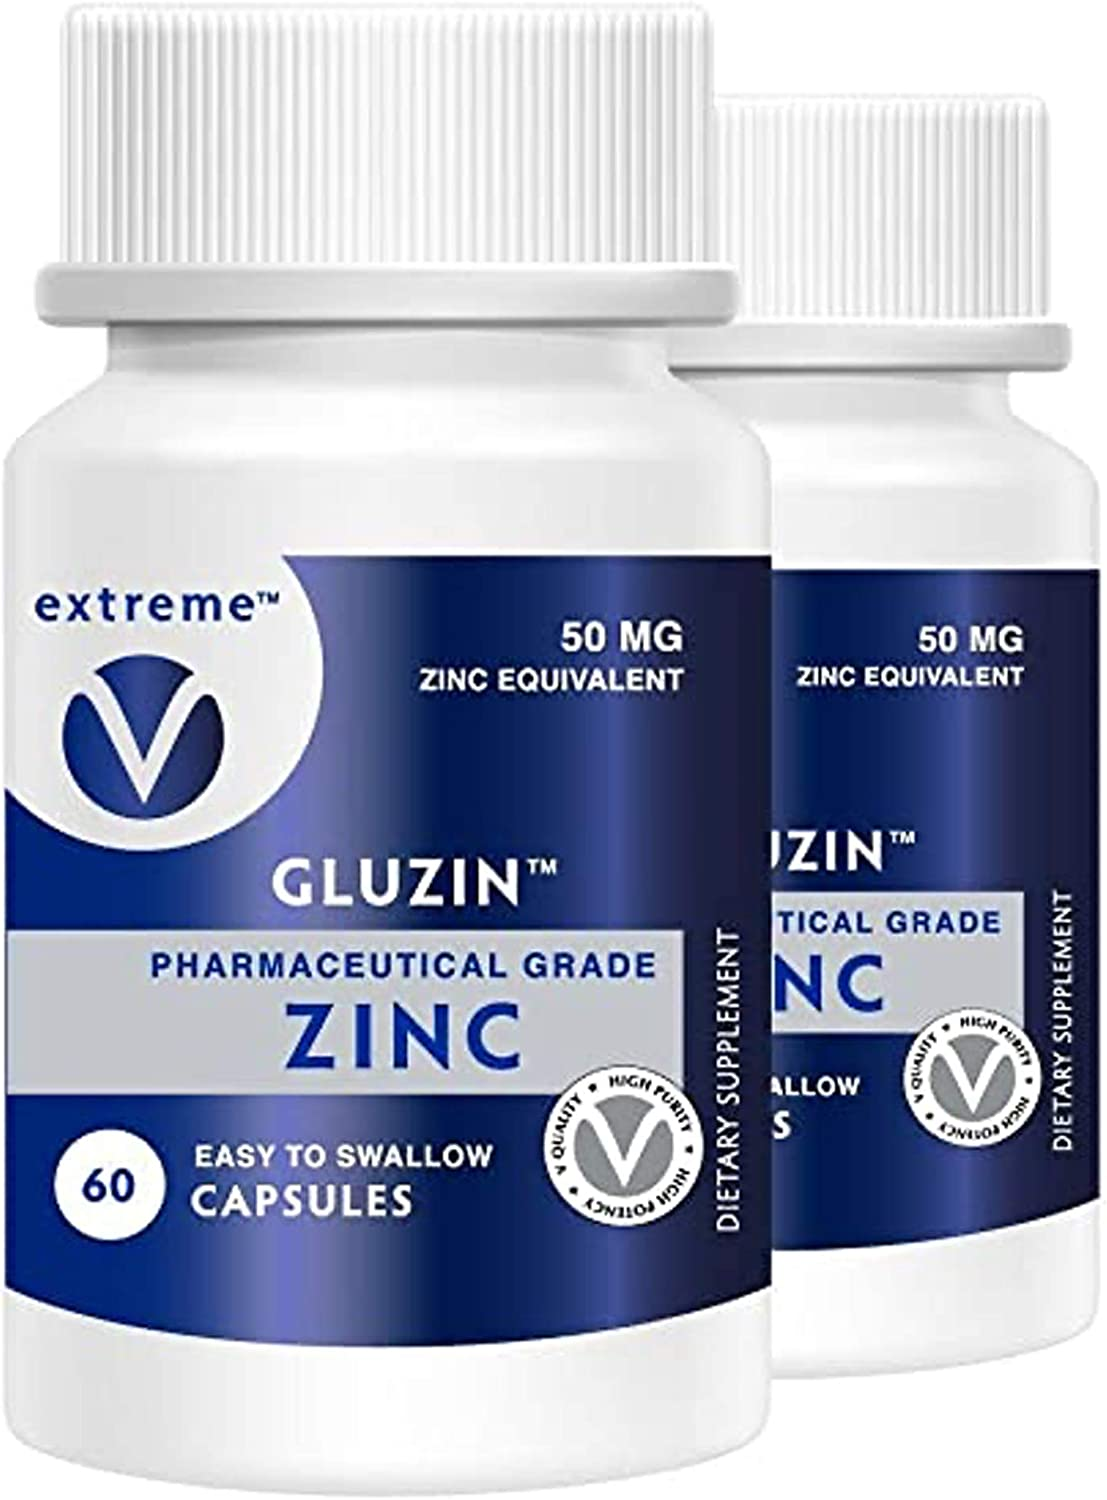 Gluzin 50MG Pharmaceutical Grade Zinc Frontline Defense Vegan Friendly – 2 Bottles (120 Vegetarian Capsules)